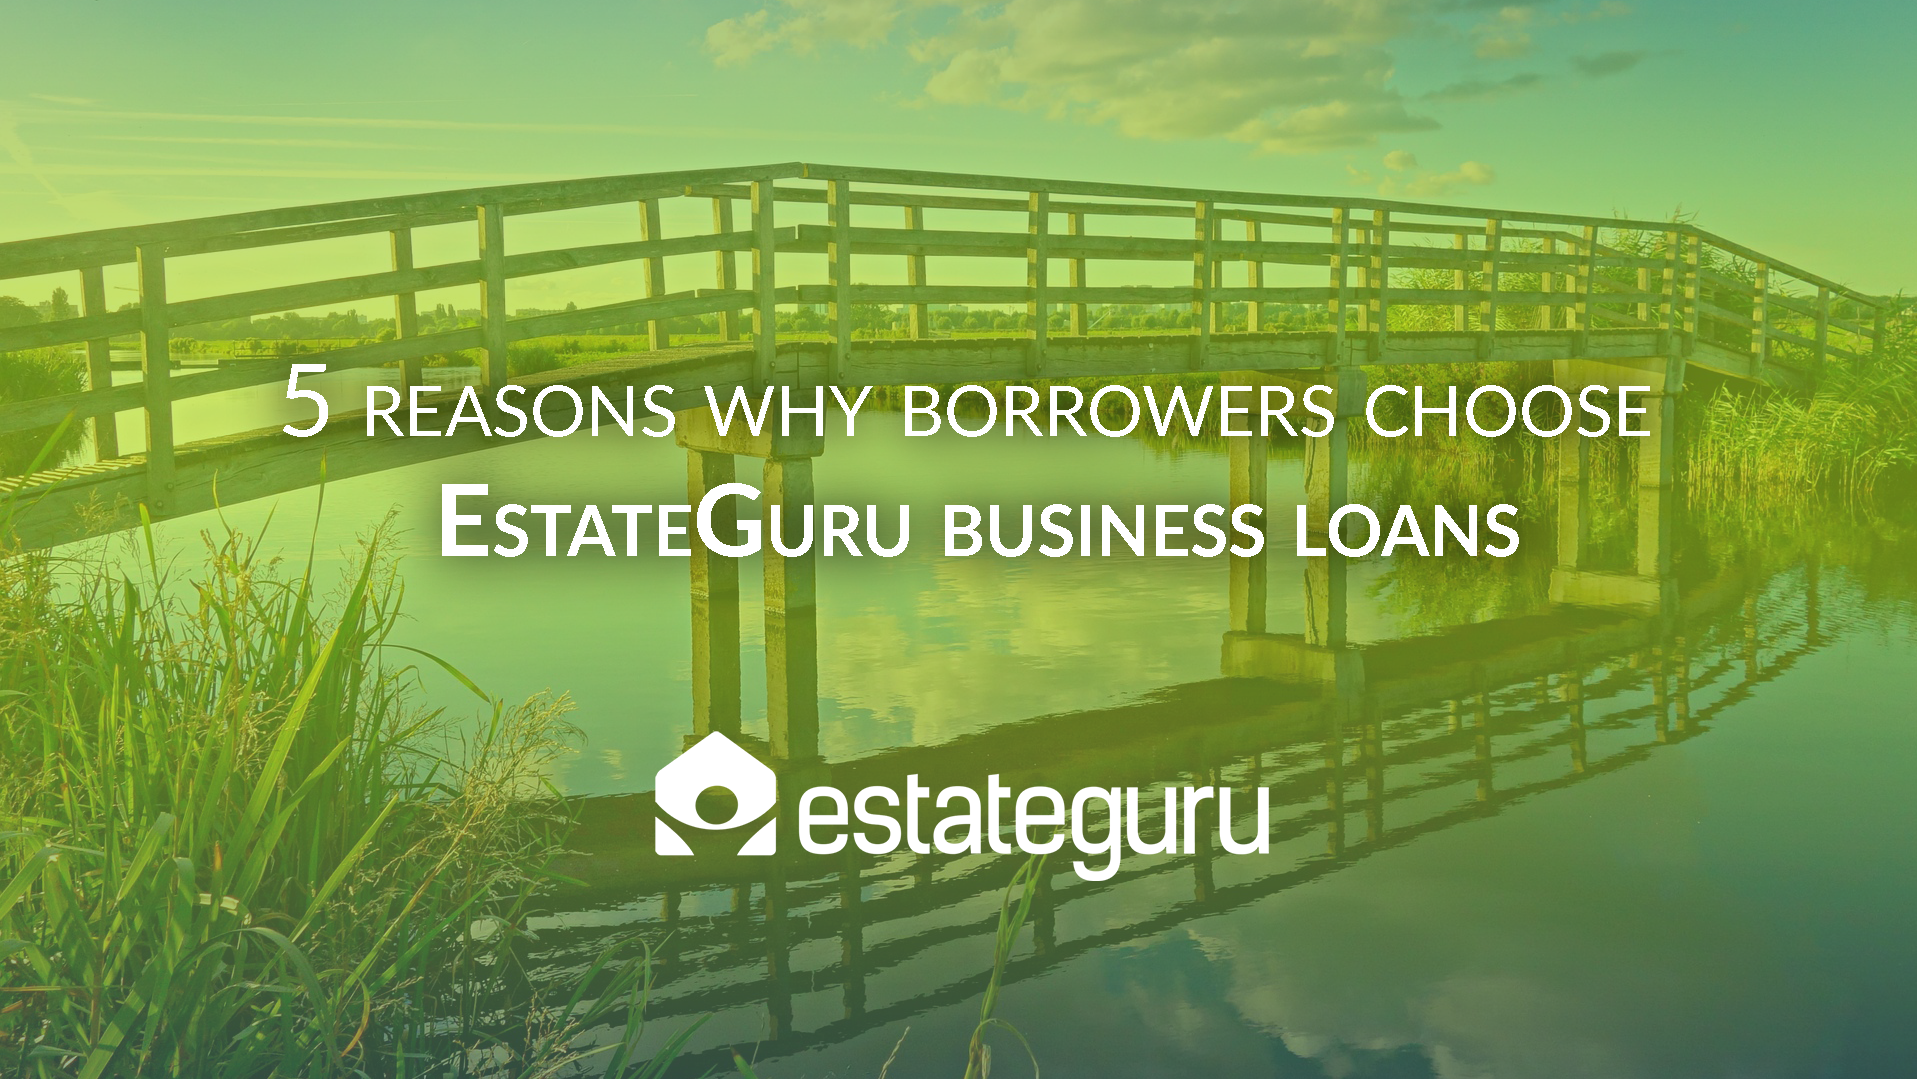 5 reasons why borrowers choose EstateGuru business loan